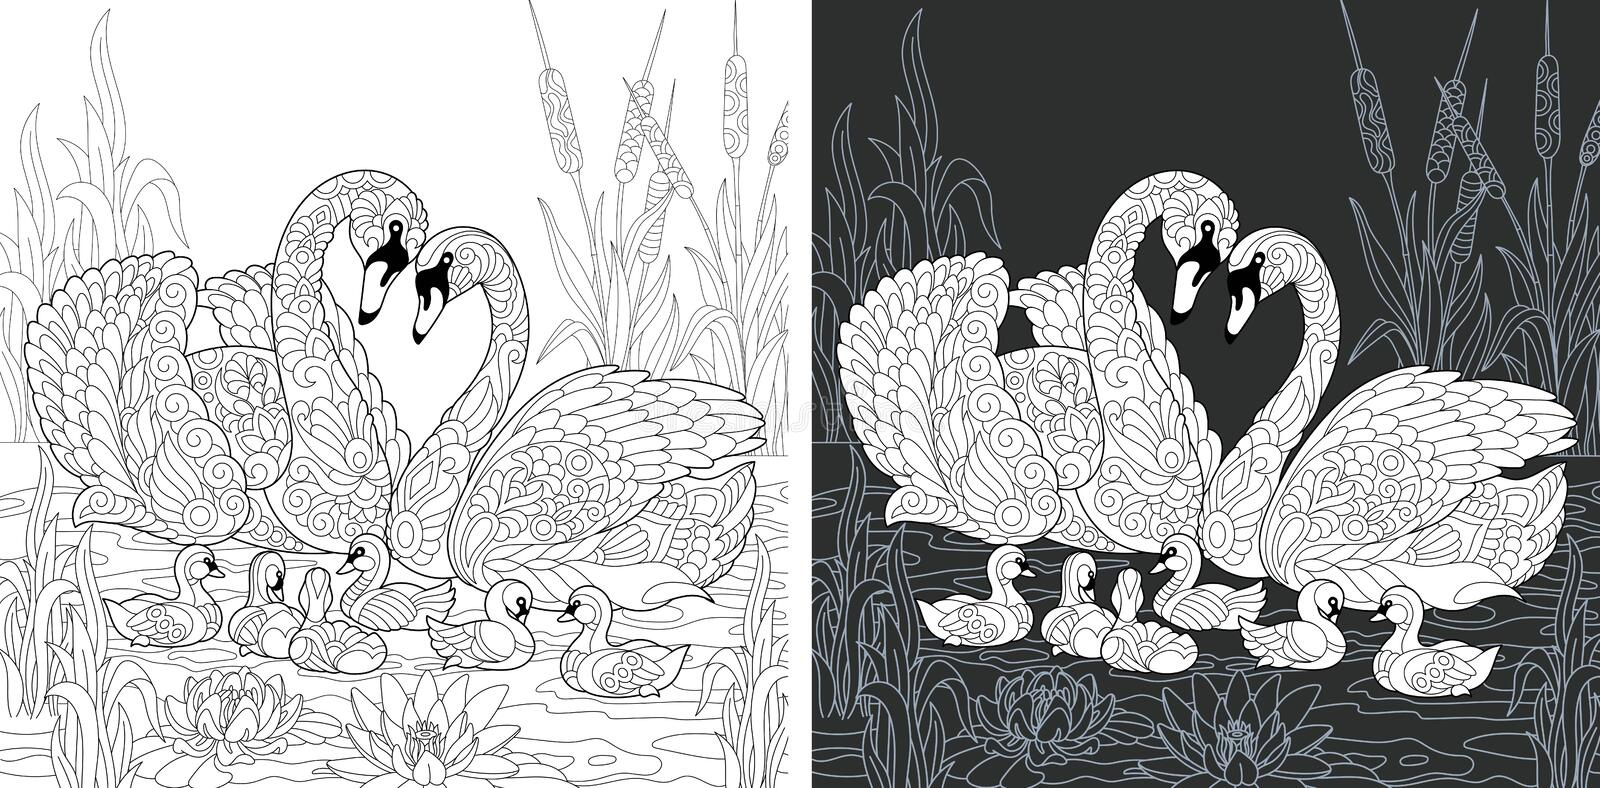 Coloring book page with swan family royalty free illustration